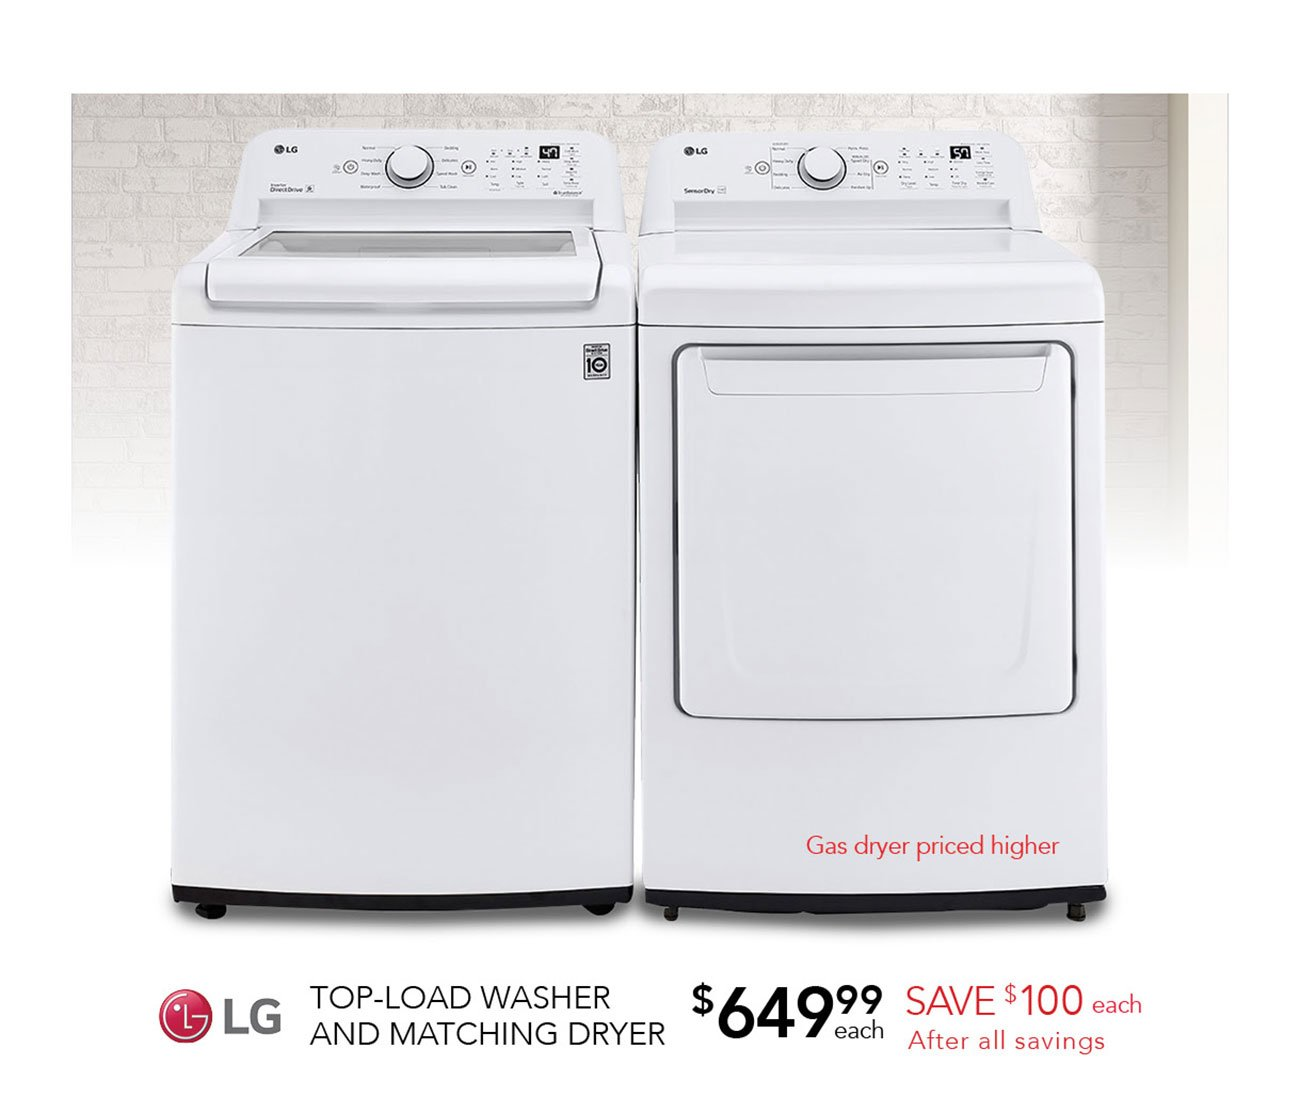 LG-top-load-washer-dryer